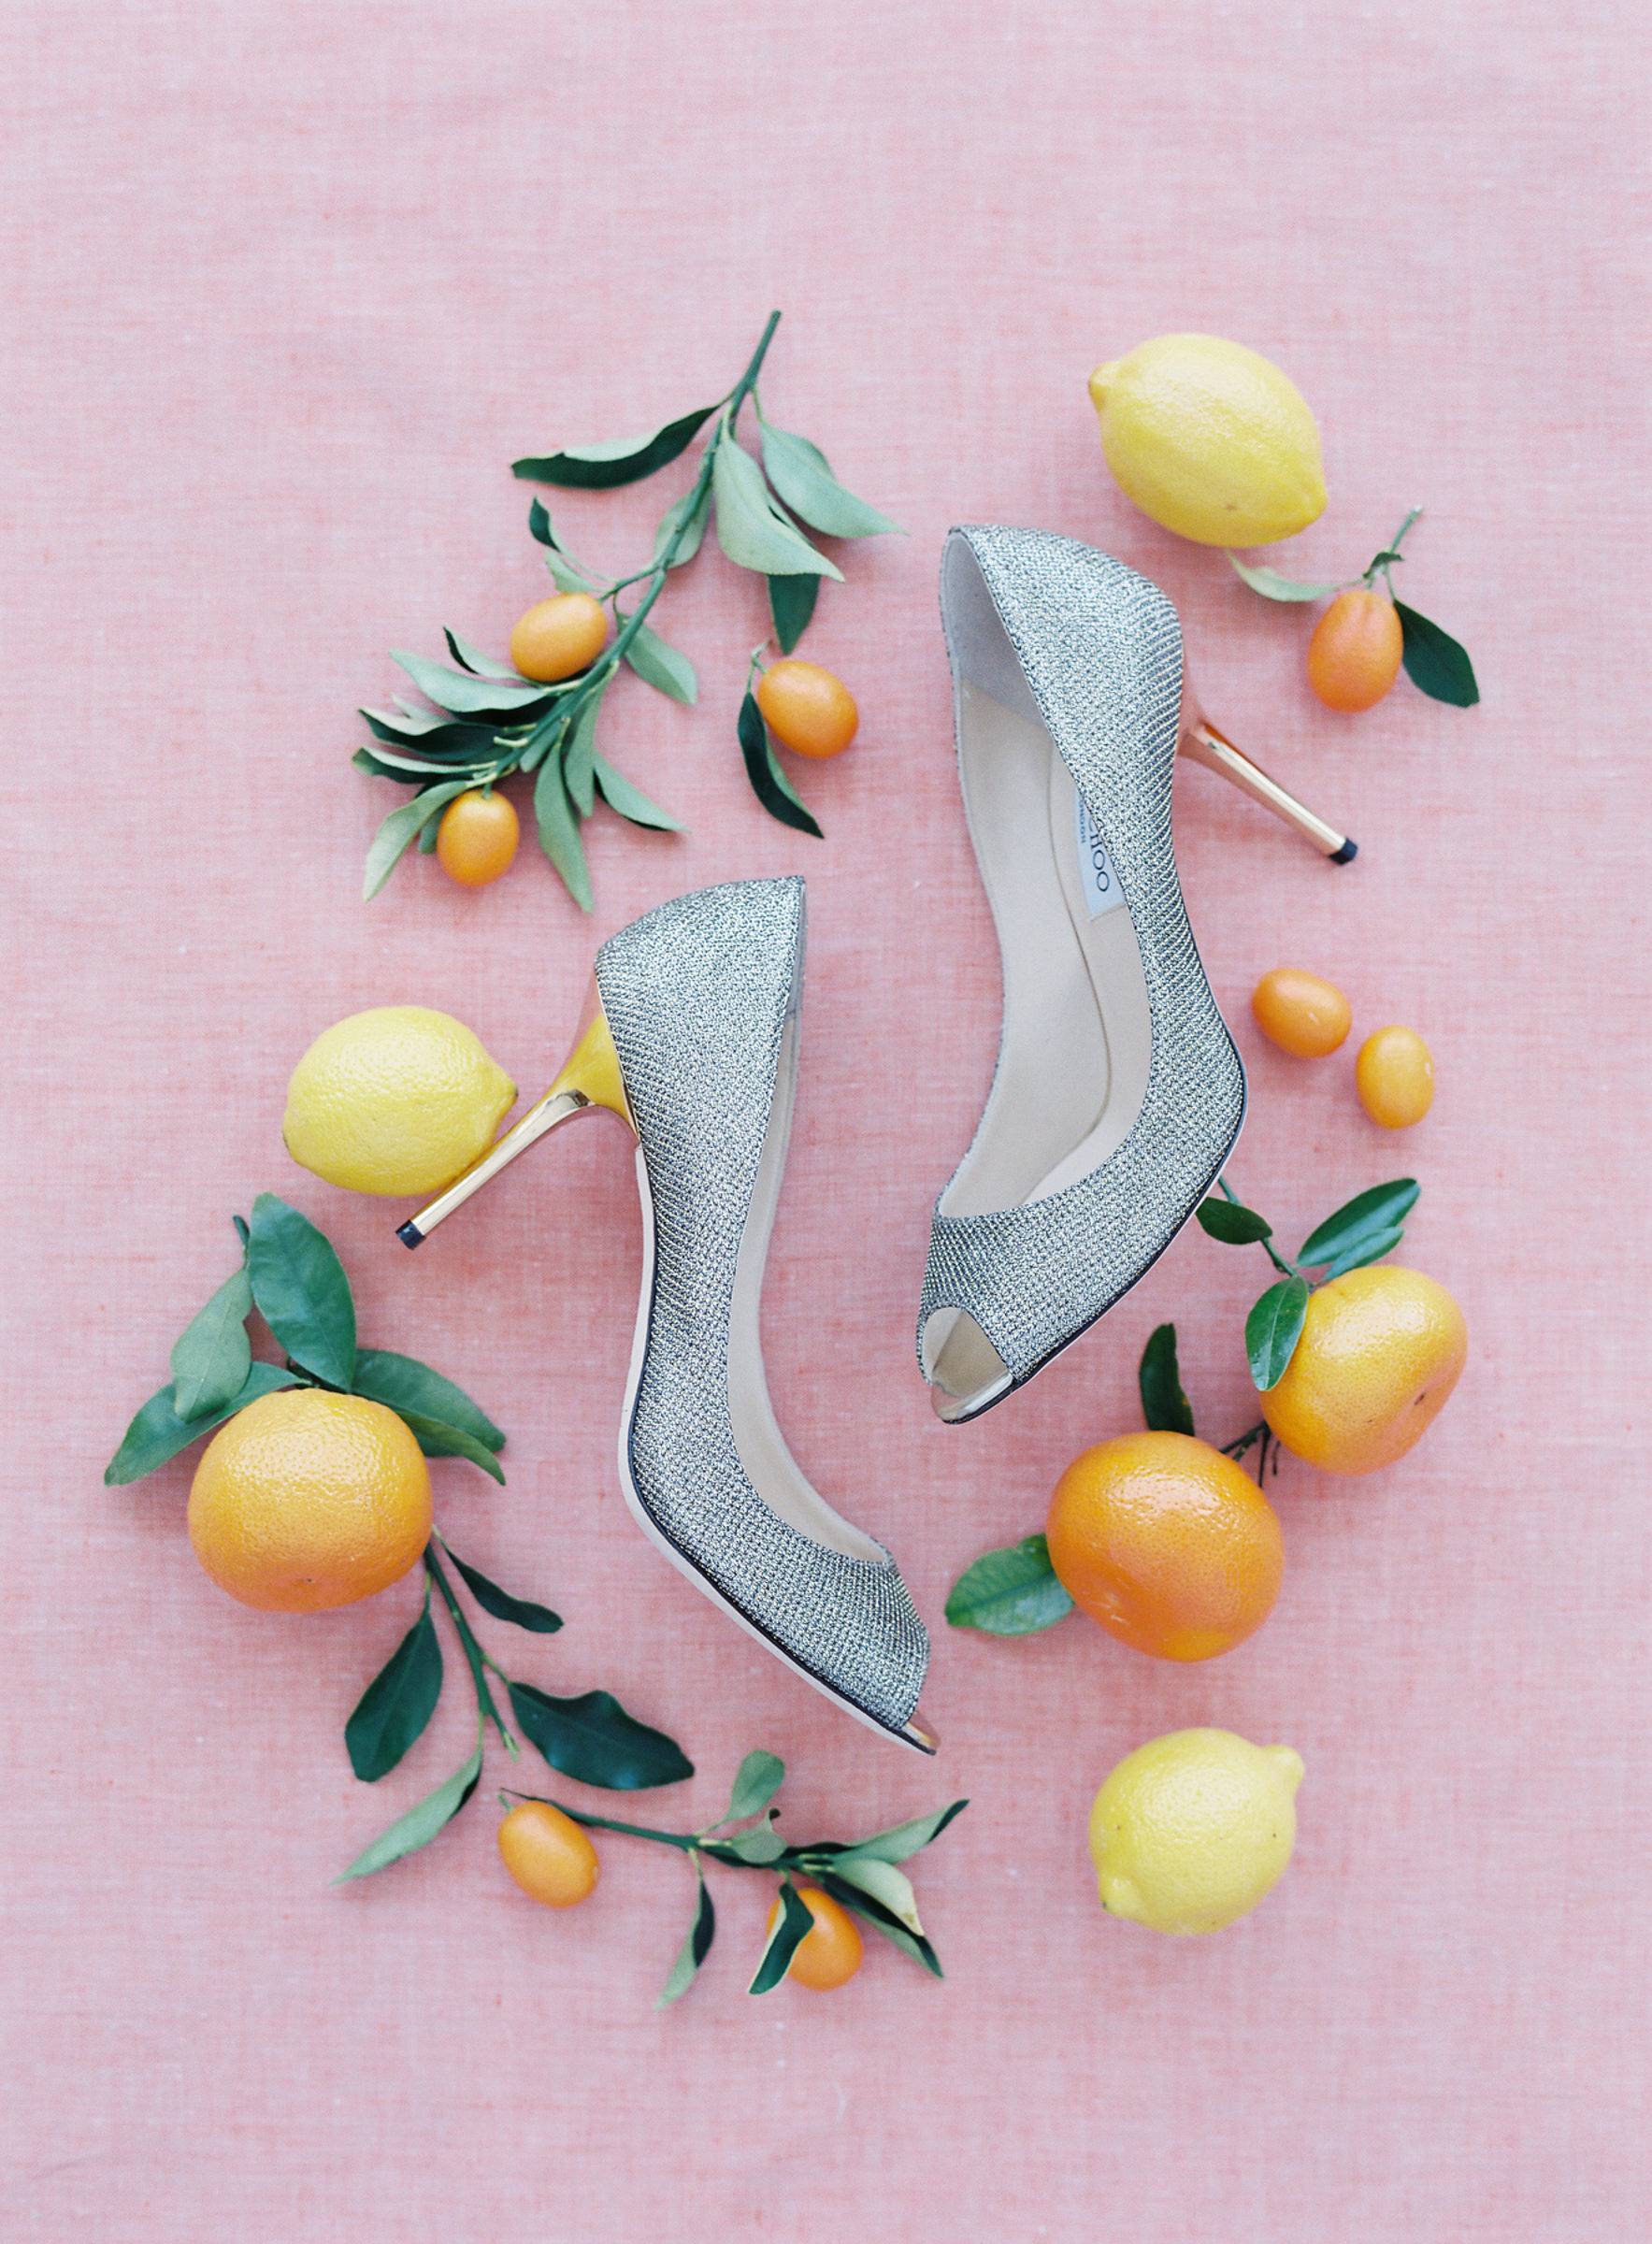 jimmy-choo-silver-pumps-surrounded-by-oranges-photographed-by-corbin-gurkin-worlds-best-wedding-photos